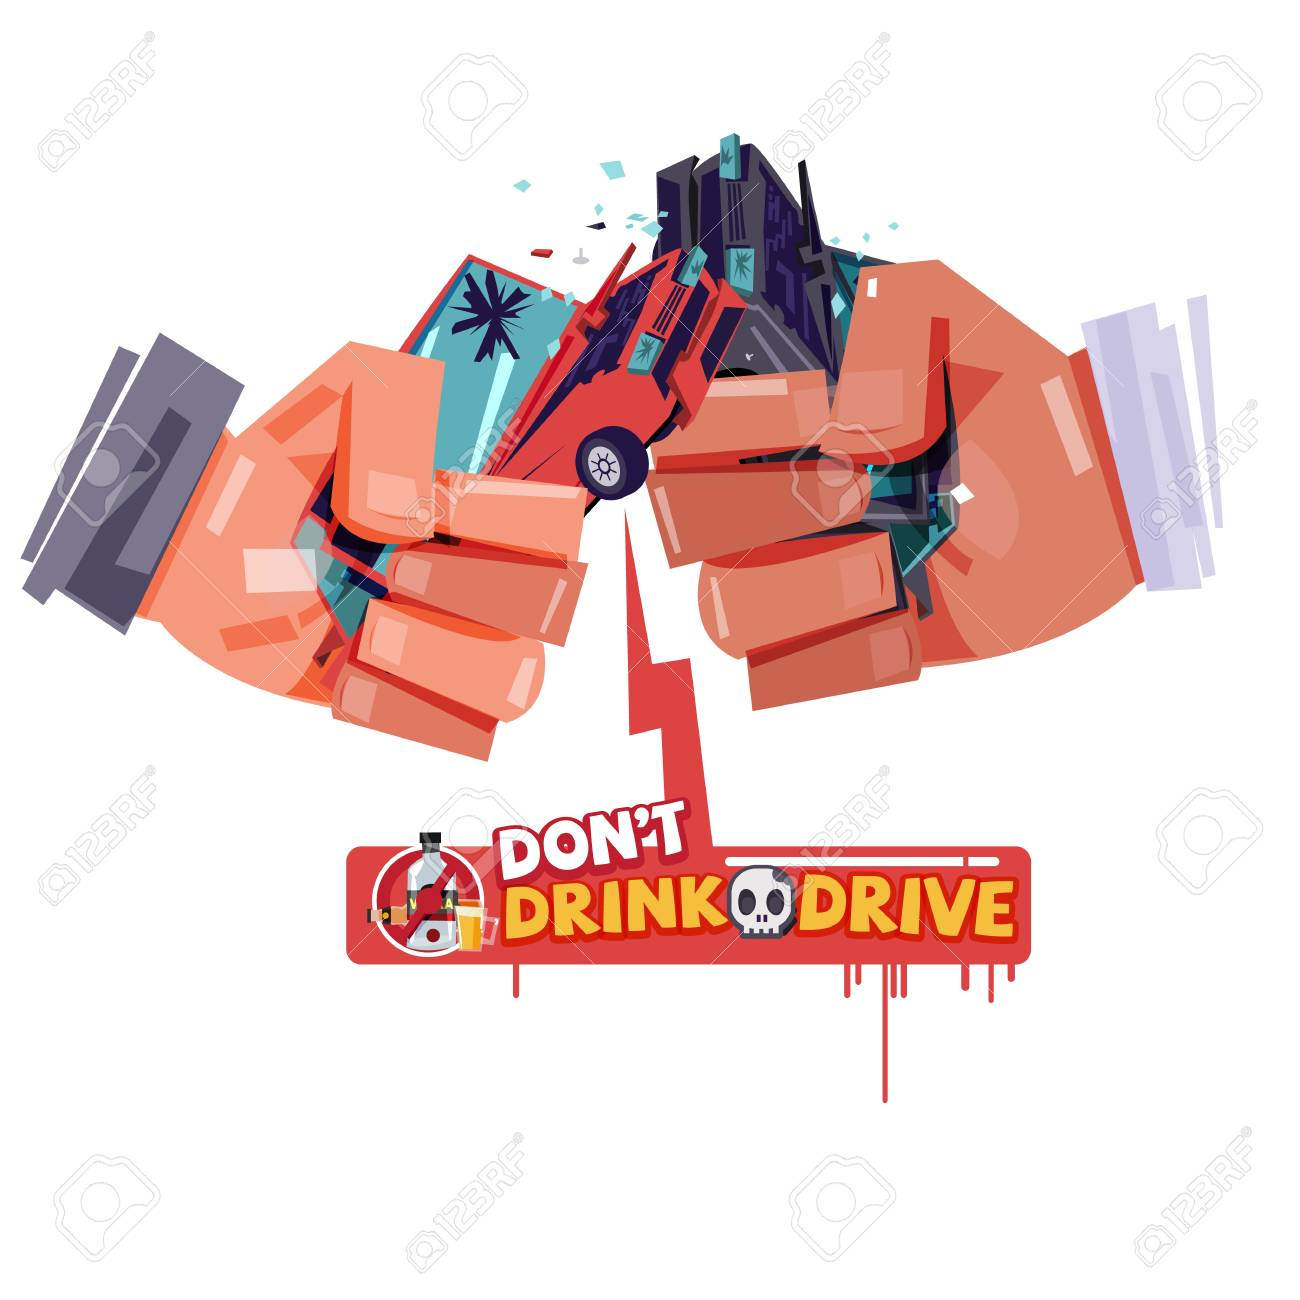 cheers hand with hitting car crash like a beer or alcohol glass. accident from drink and drive. don't drink and drive concept - vector illustration - 96849328